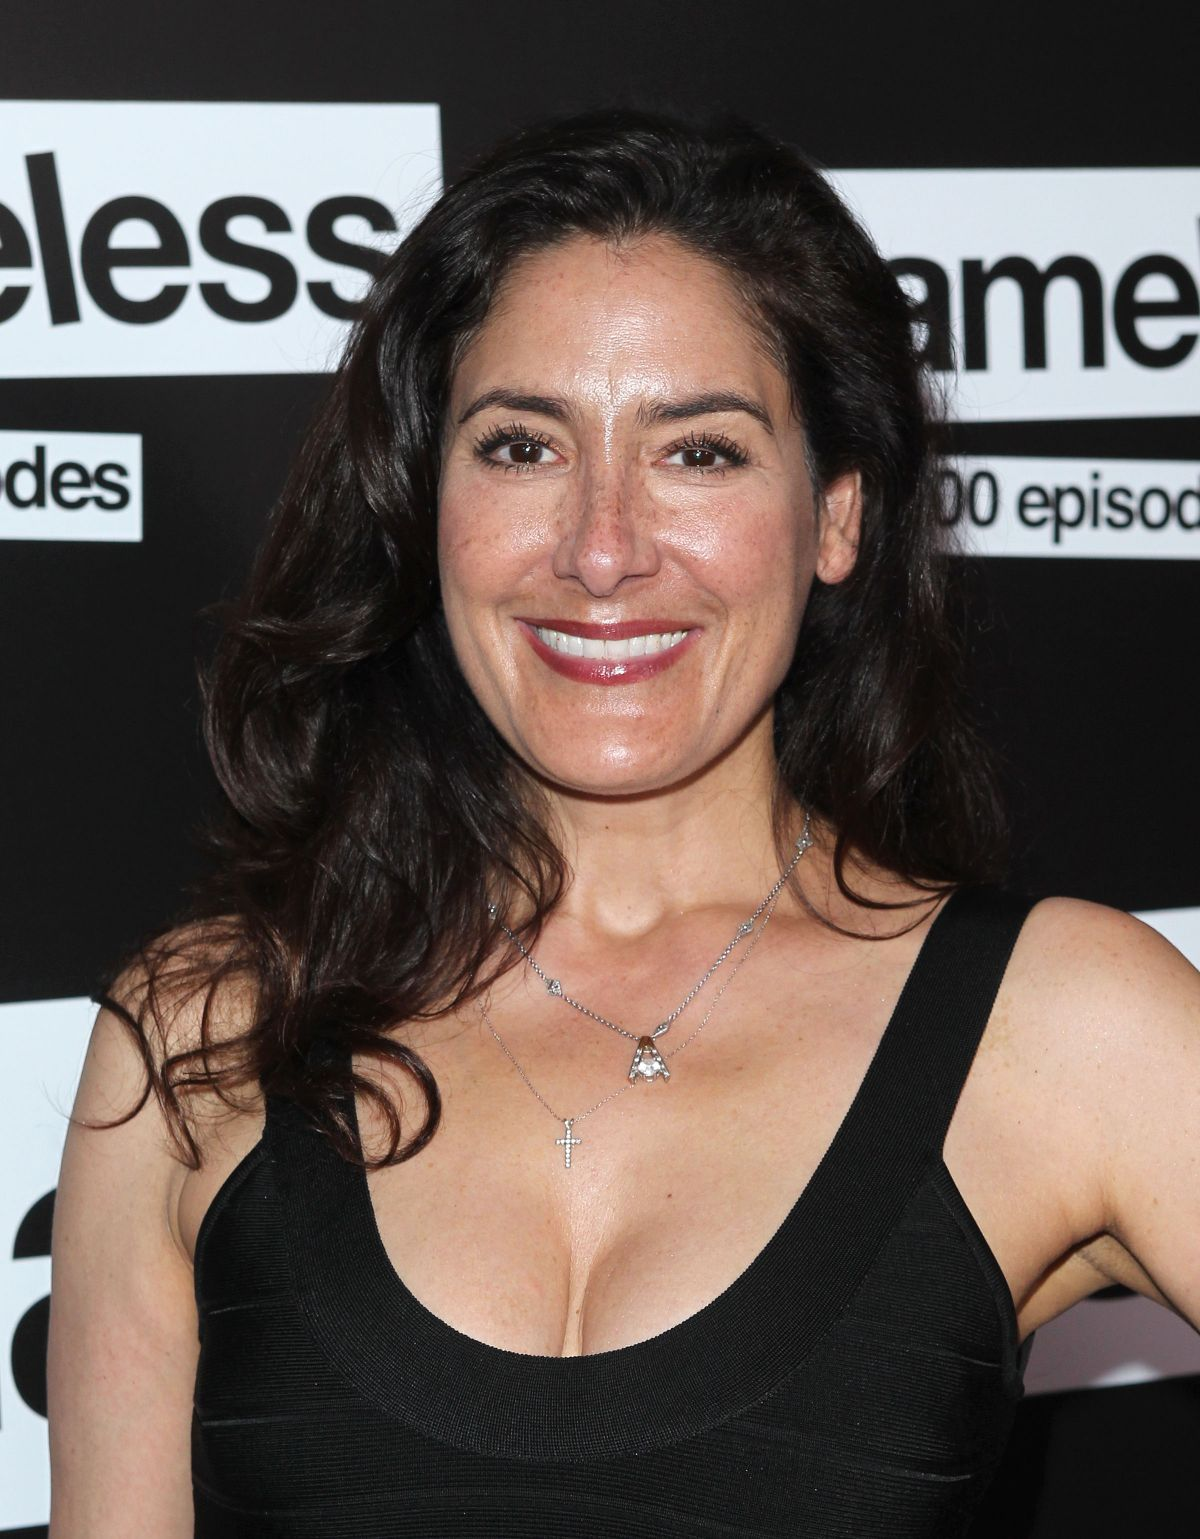 Alicia Coppola to Guest Star on Suits - TV Fanatic